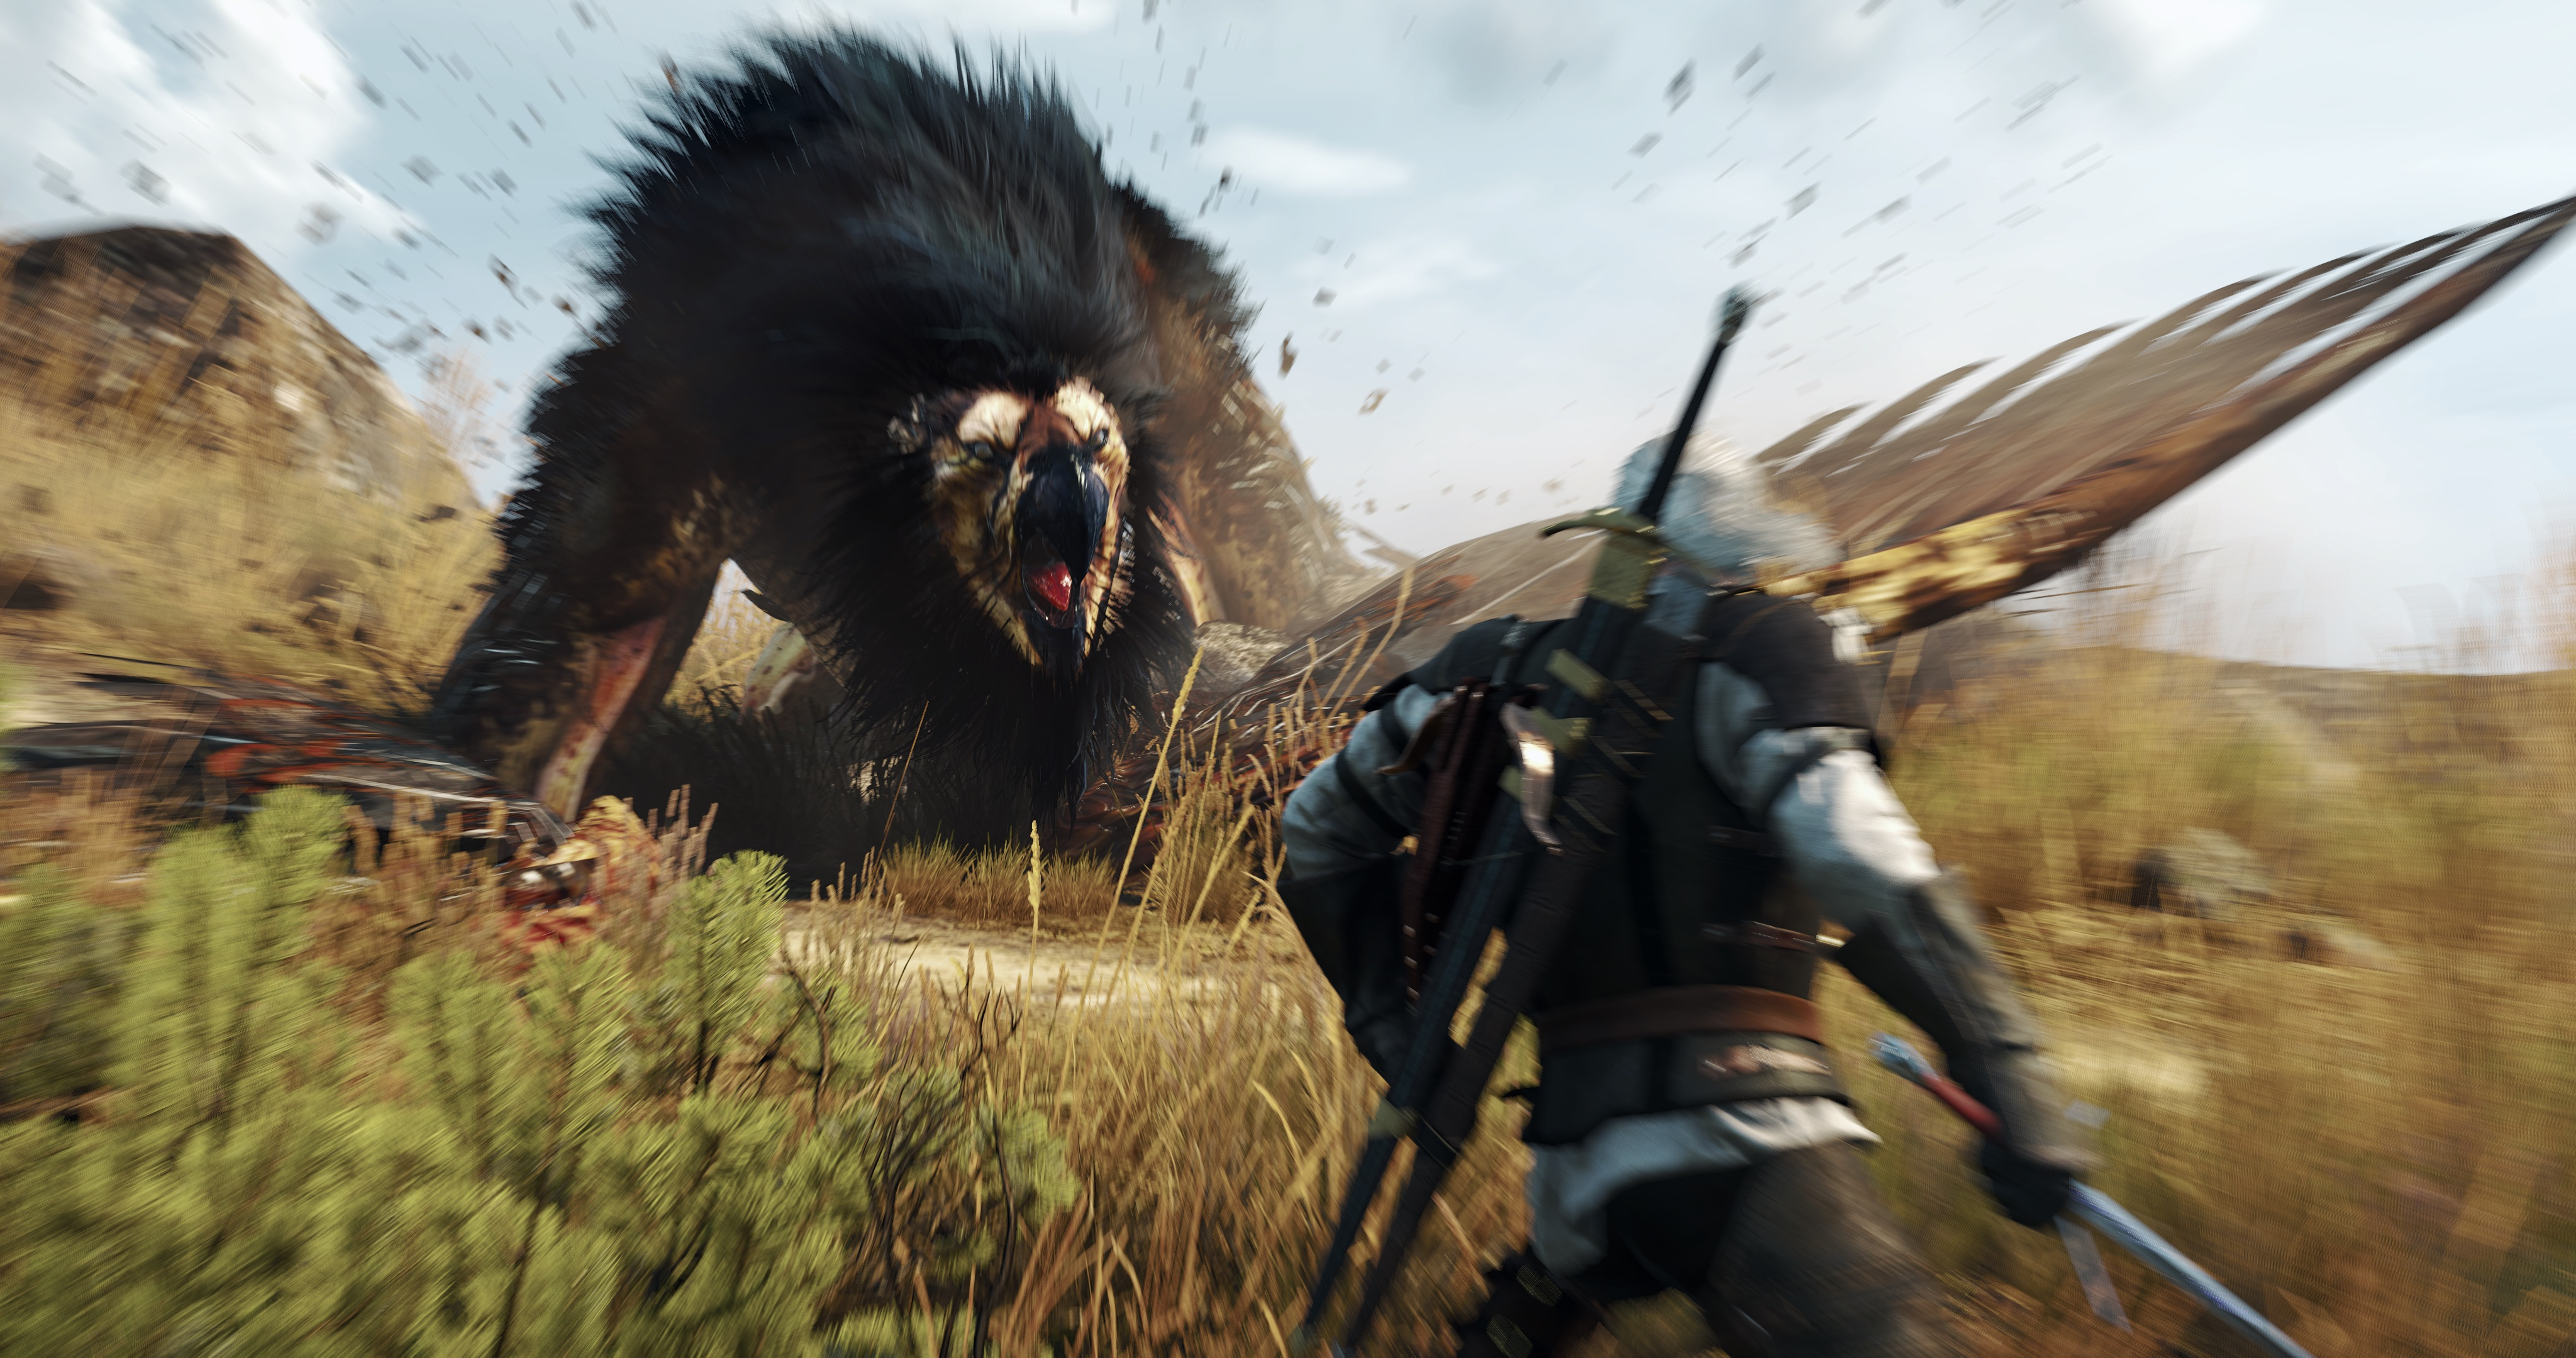 how to get money in witcher 3 pc